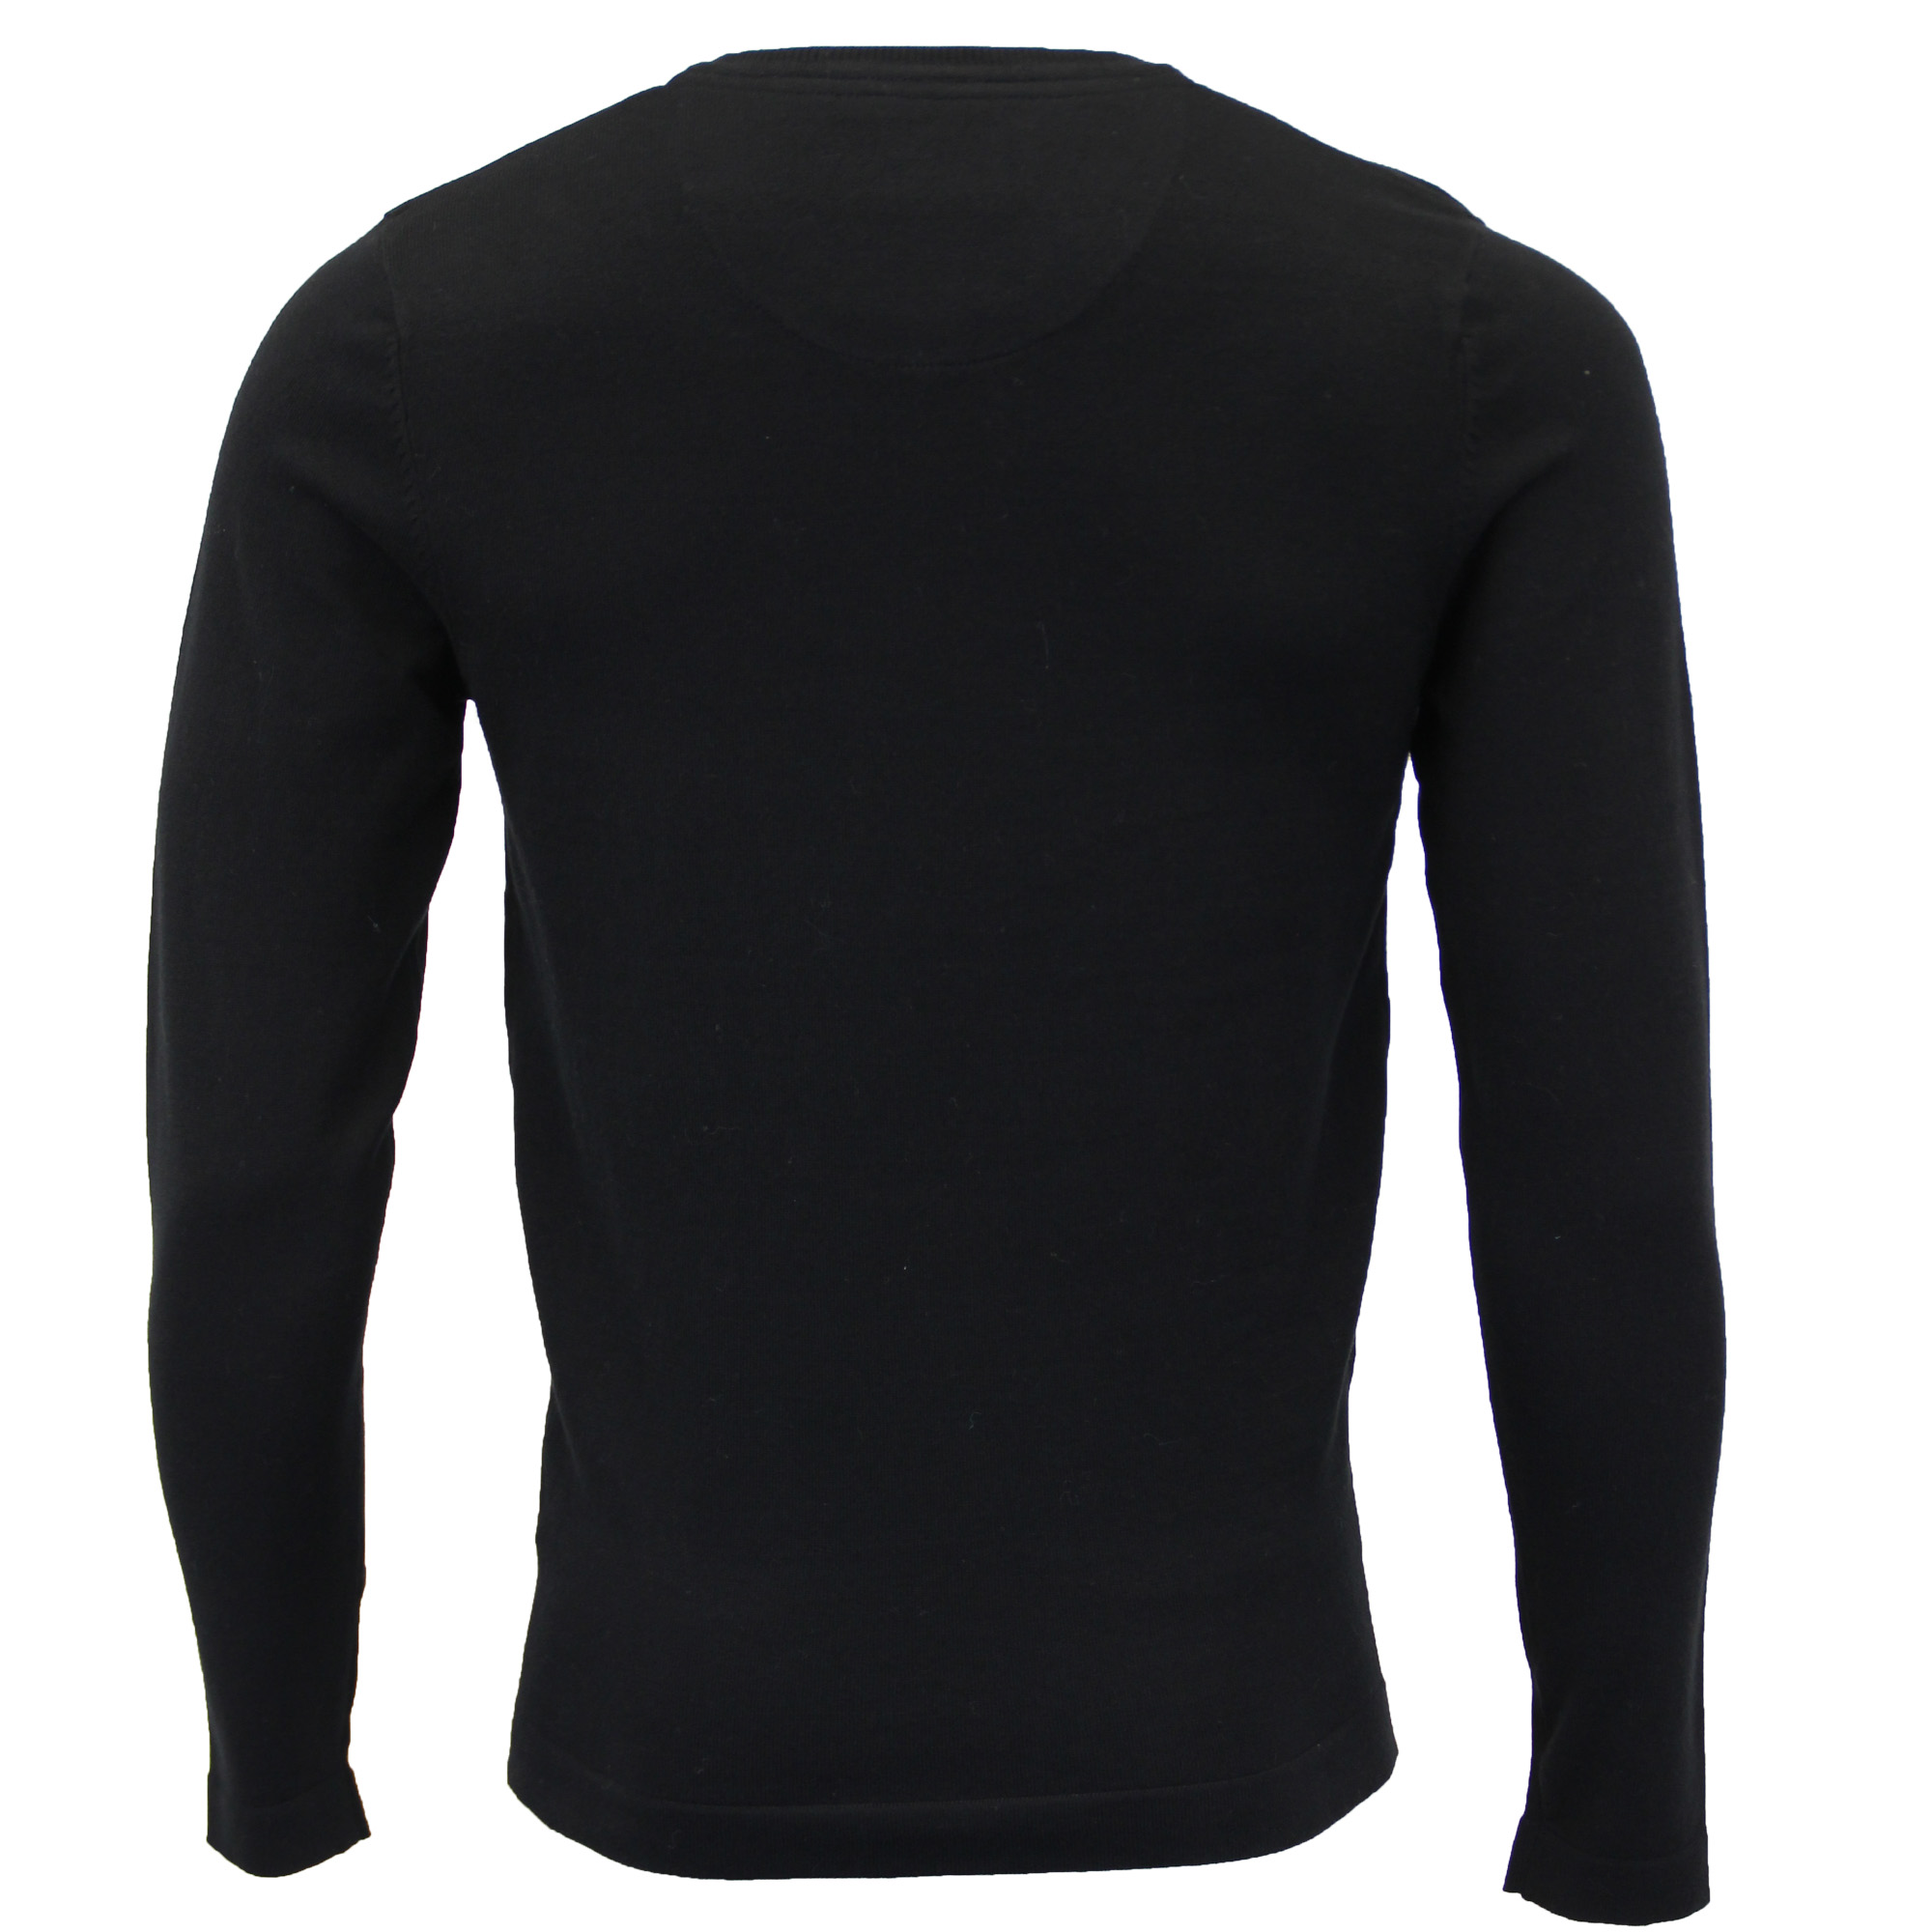 Mens-Jumper-Threadbare-Knitted-Cotton-Sweater-Half-Zip-Pullover-Top-Winter-New thumbnail 6